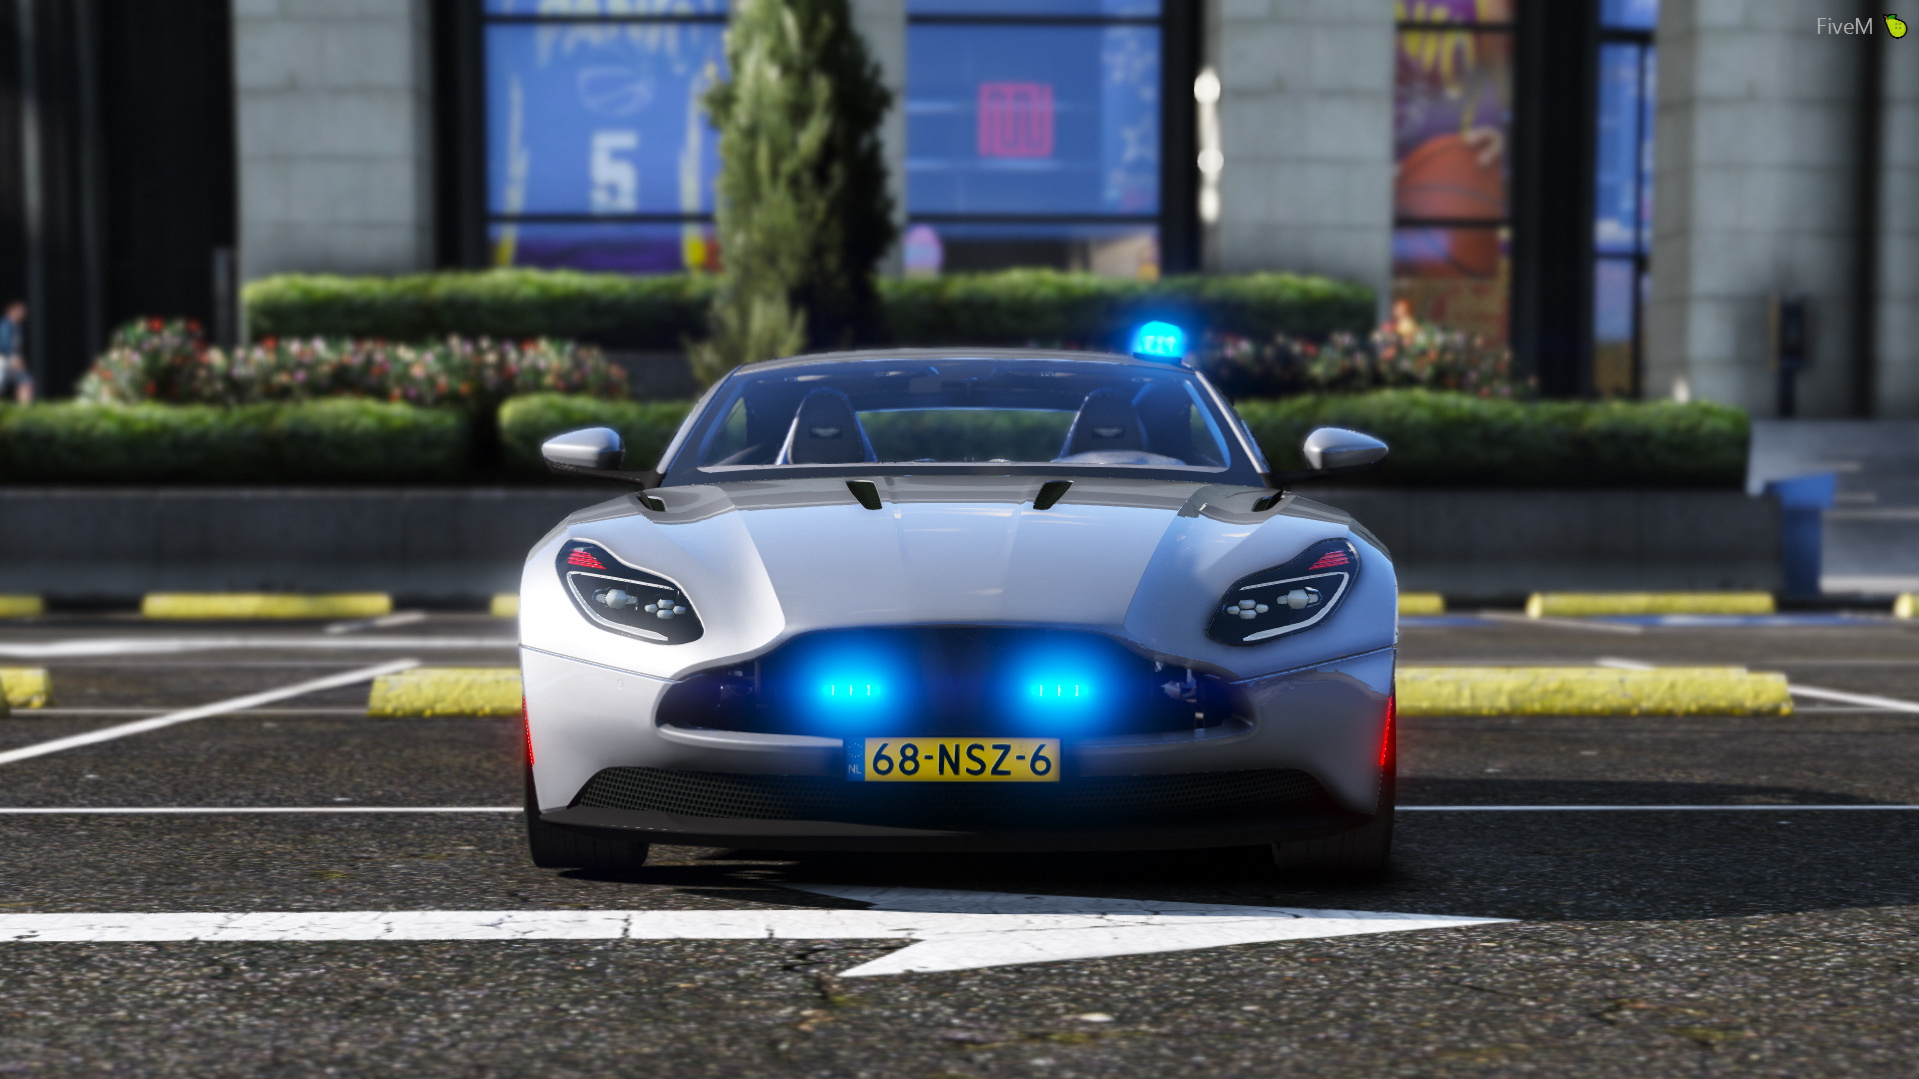 Aston Martin Db11 Police Politie Unmarked Els Replace Gta5 Mods Com